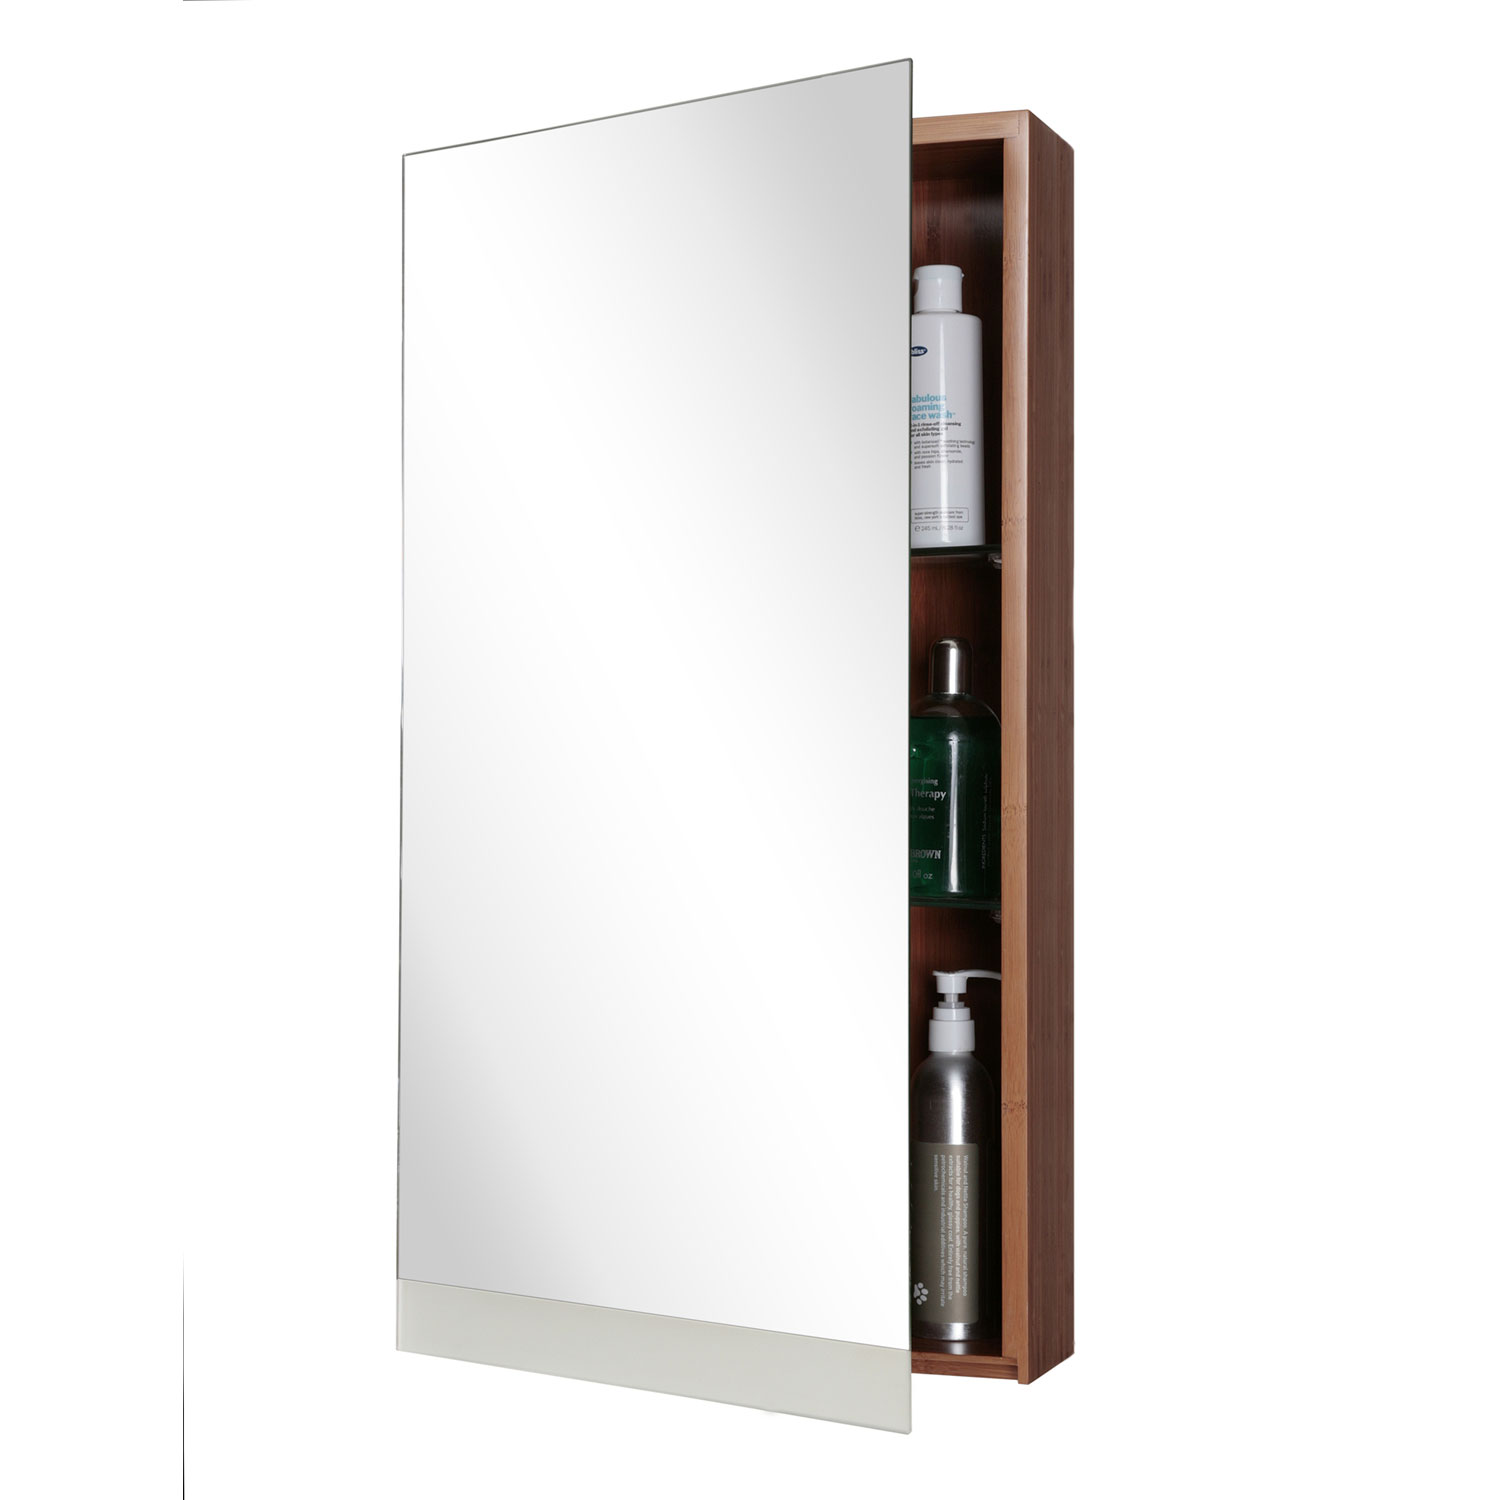 Home bathroom mirror cabinet - Home Bathroom Mirror Cabinet Interior & Exterior Doors